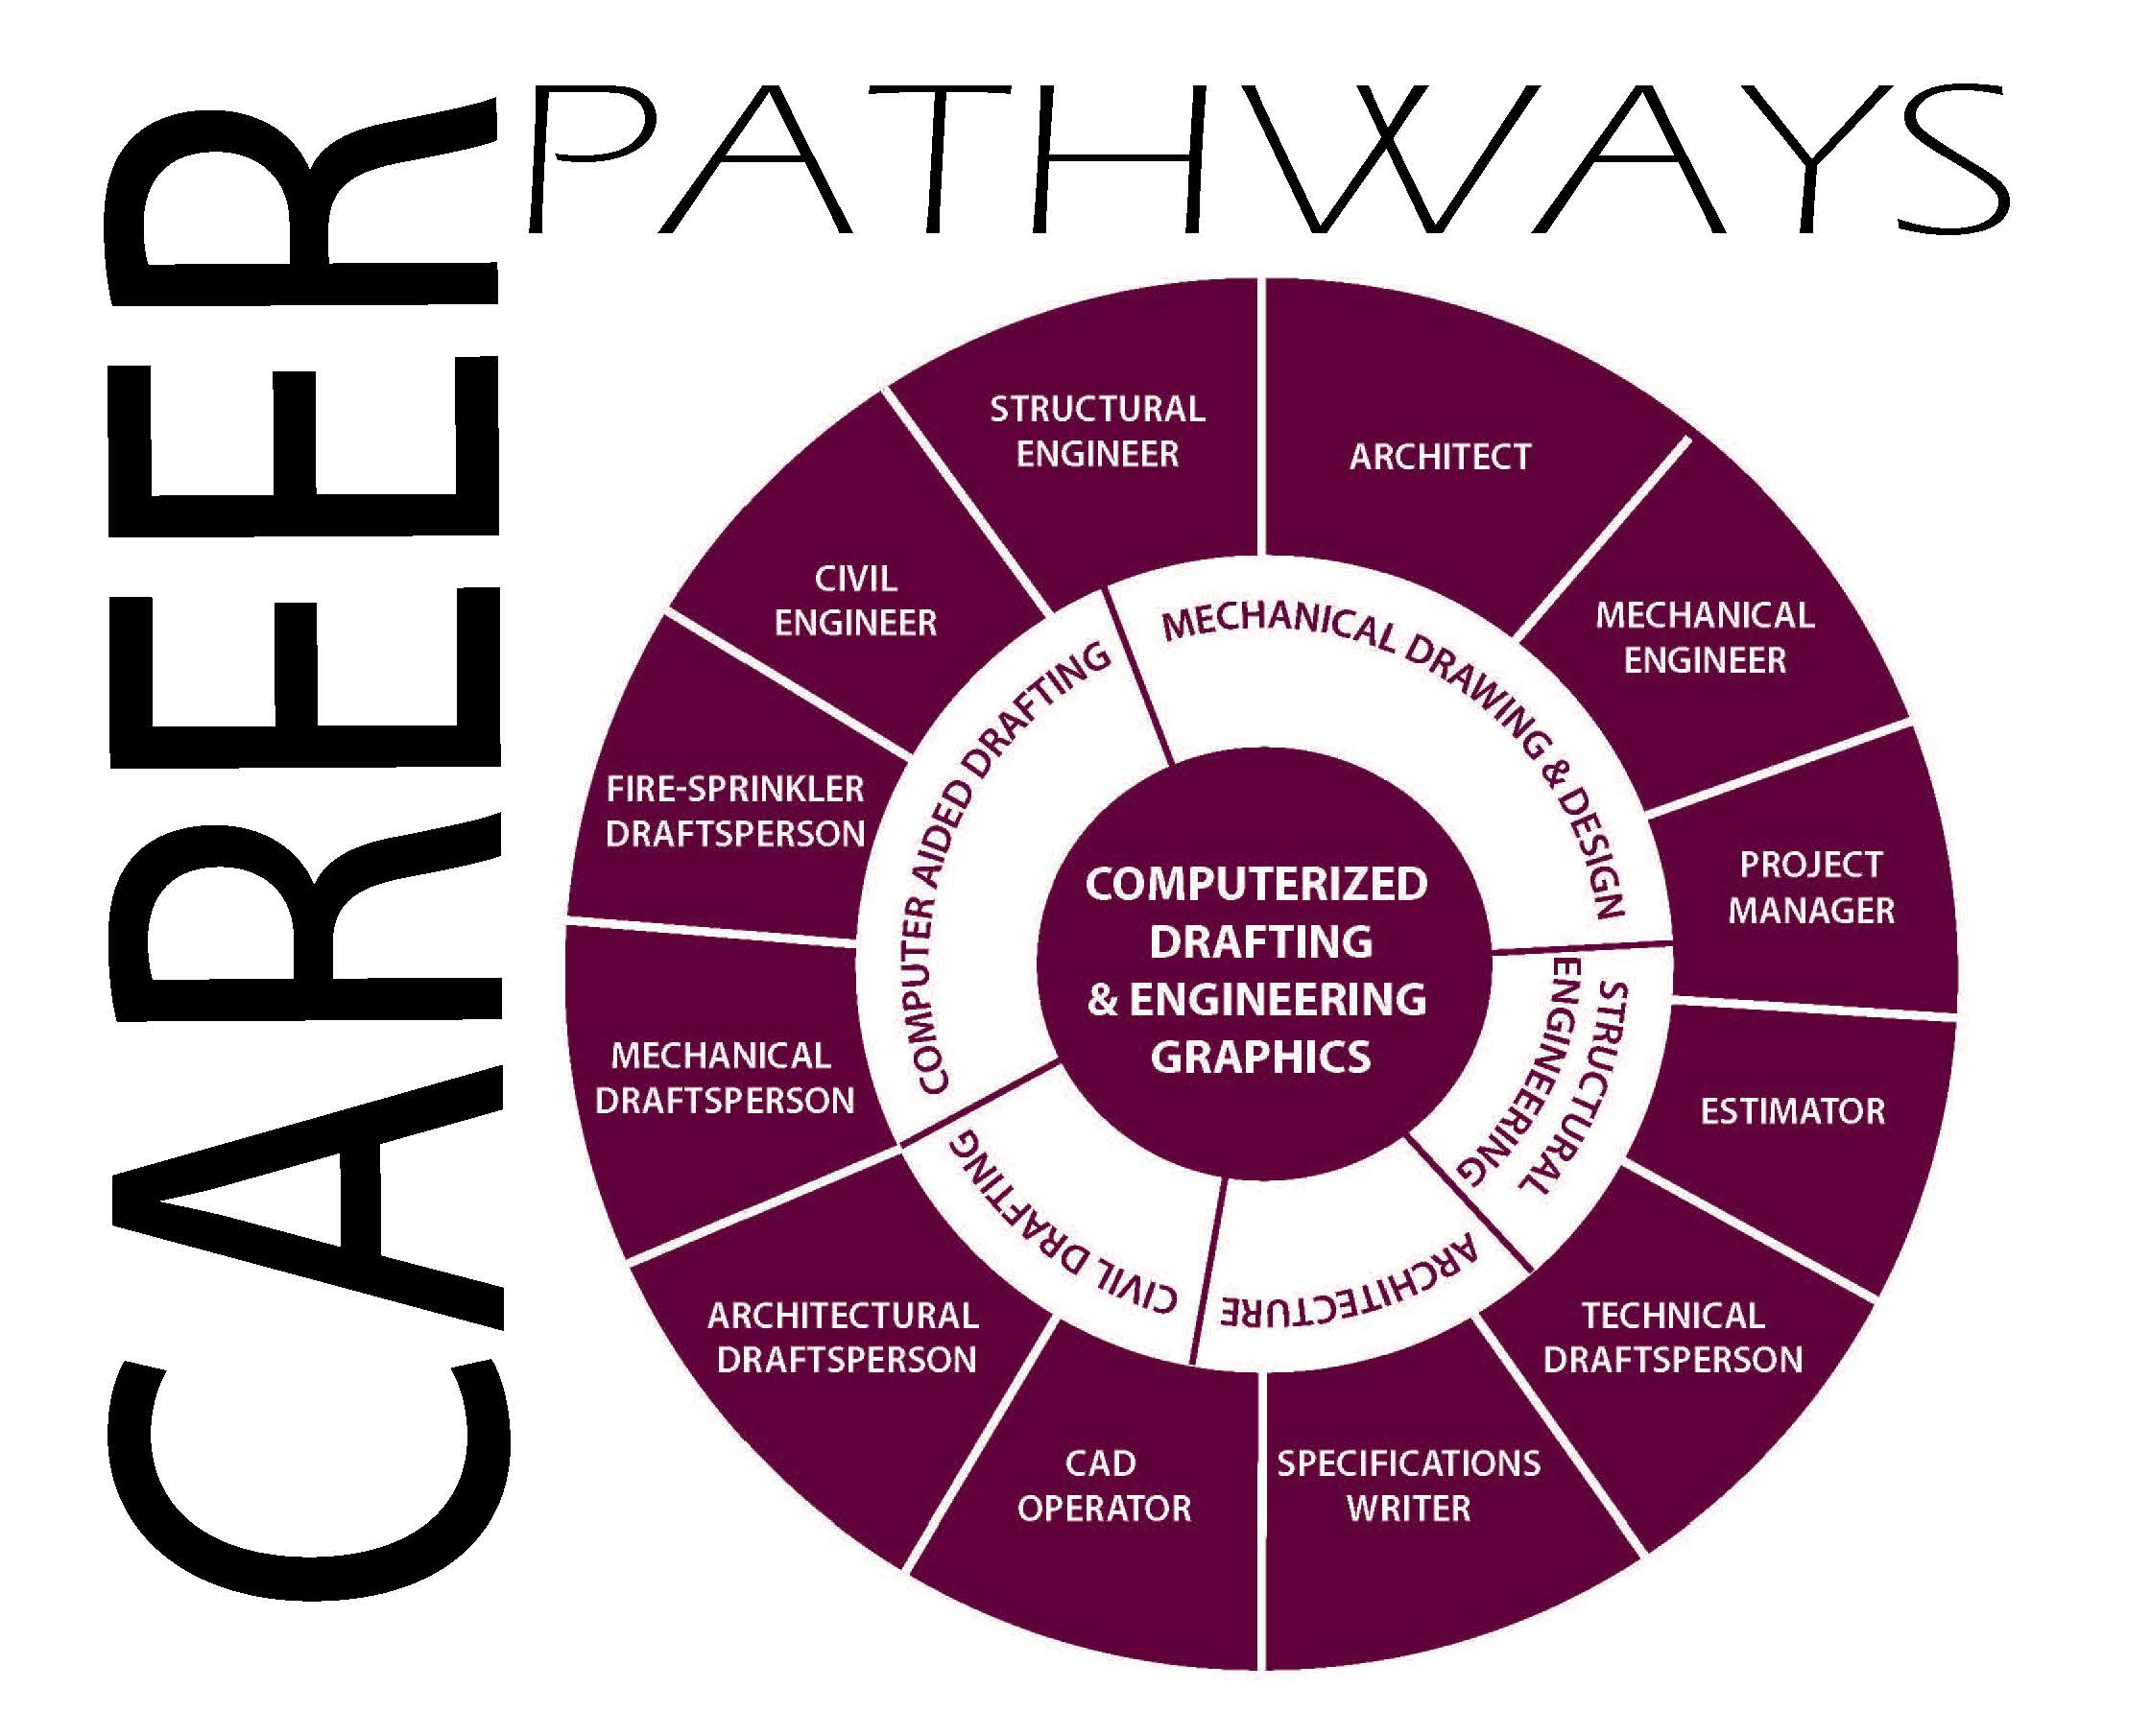 Career Pathway Wheel for Computerized Drafting & Engineering Graphics